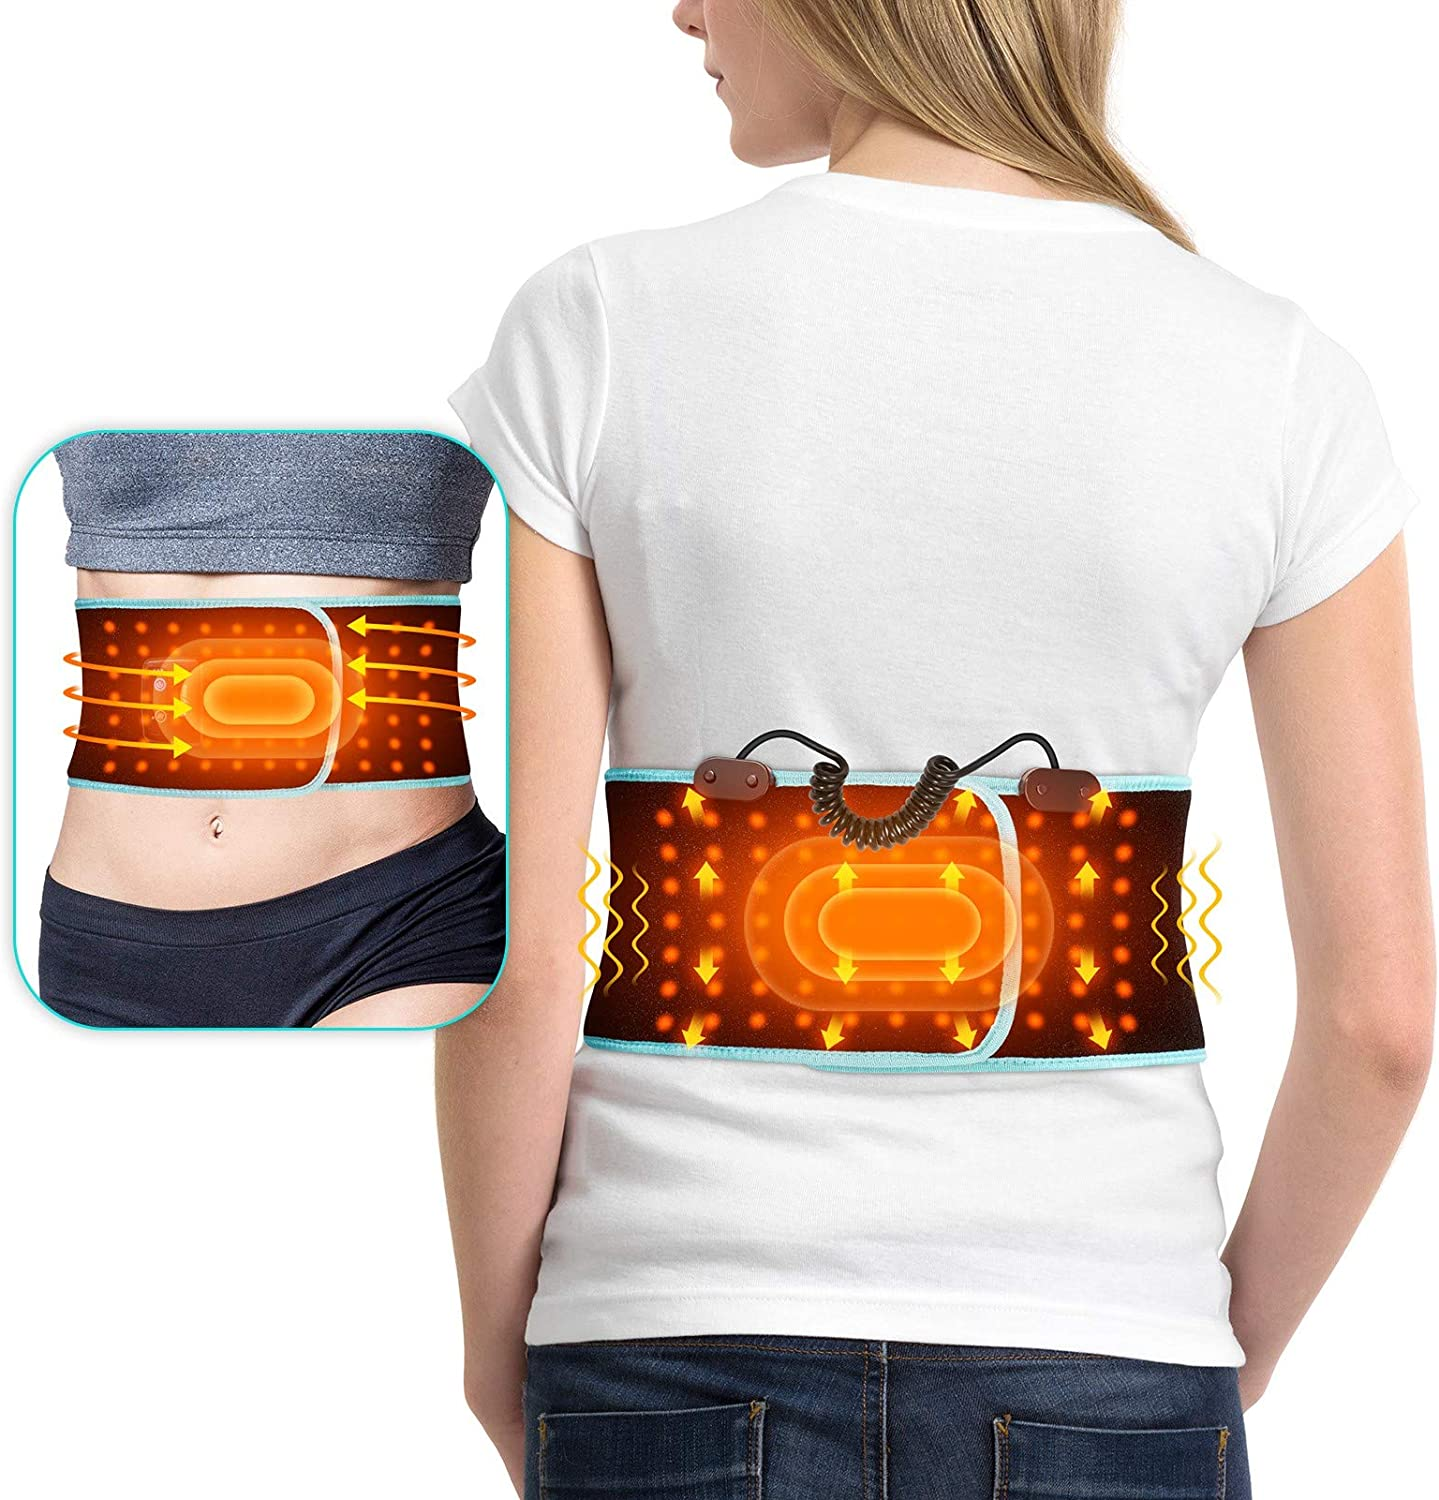 Massage Pad Heating Vibrating Back Massager with Auto Shut Off in Home Office Lumbar Pain Relief for Women/Men